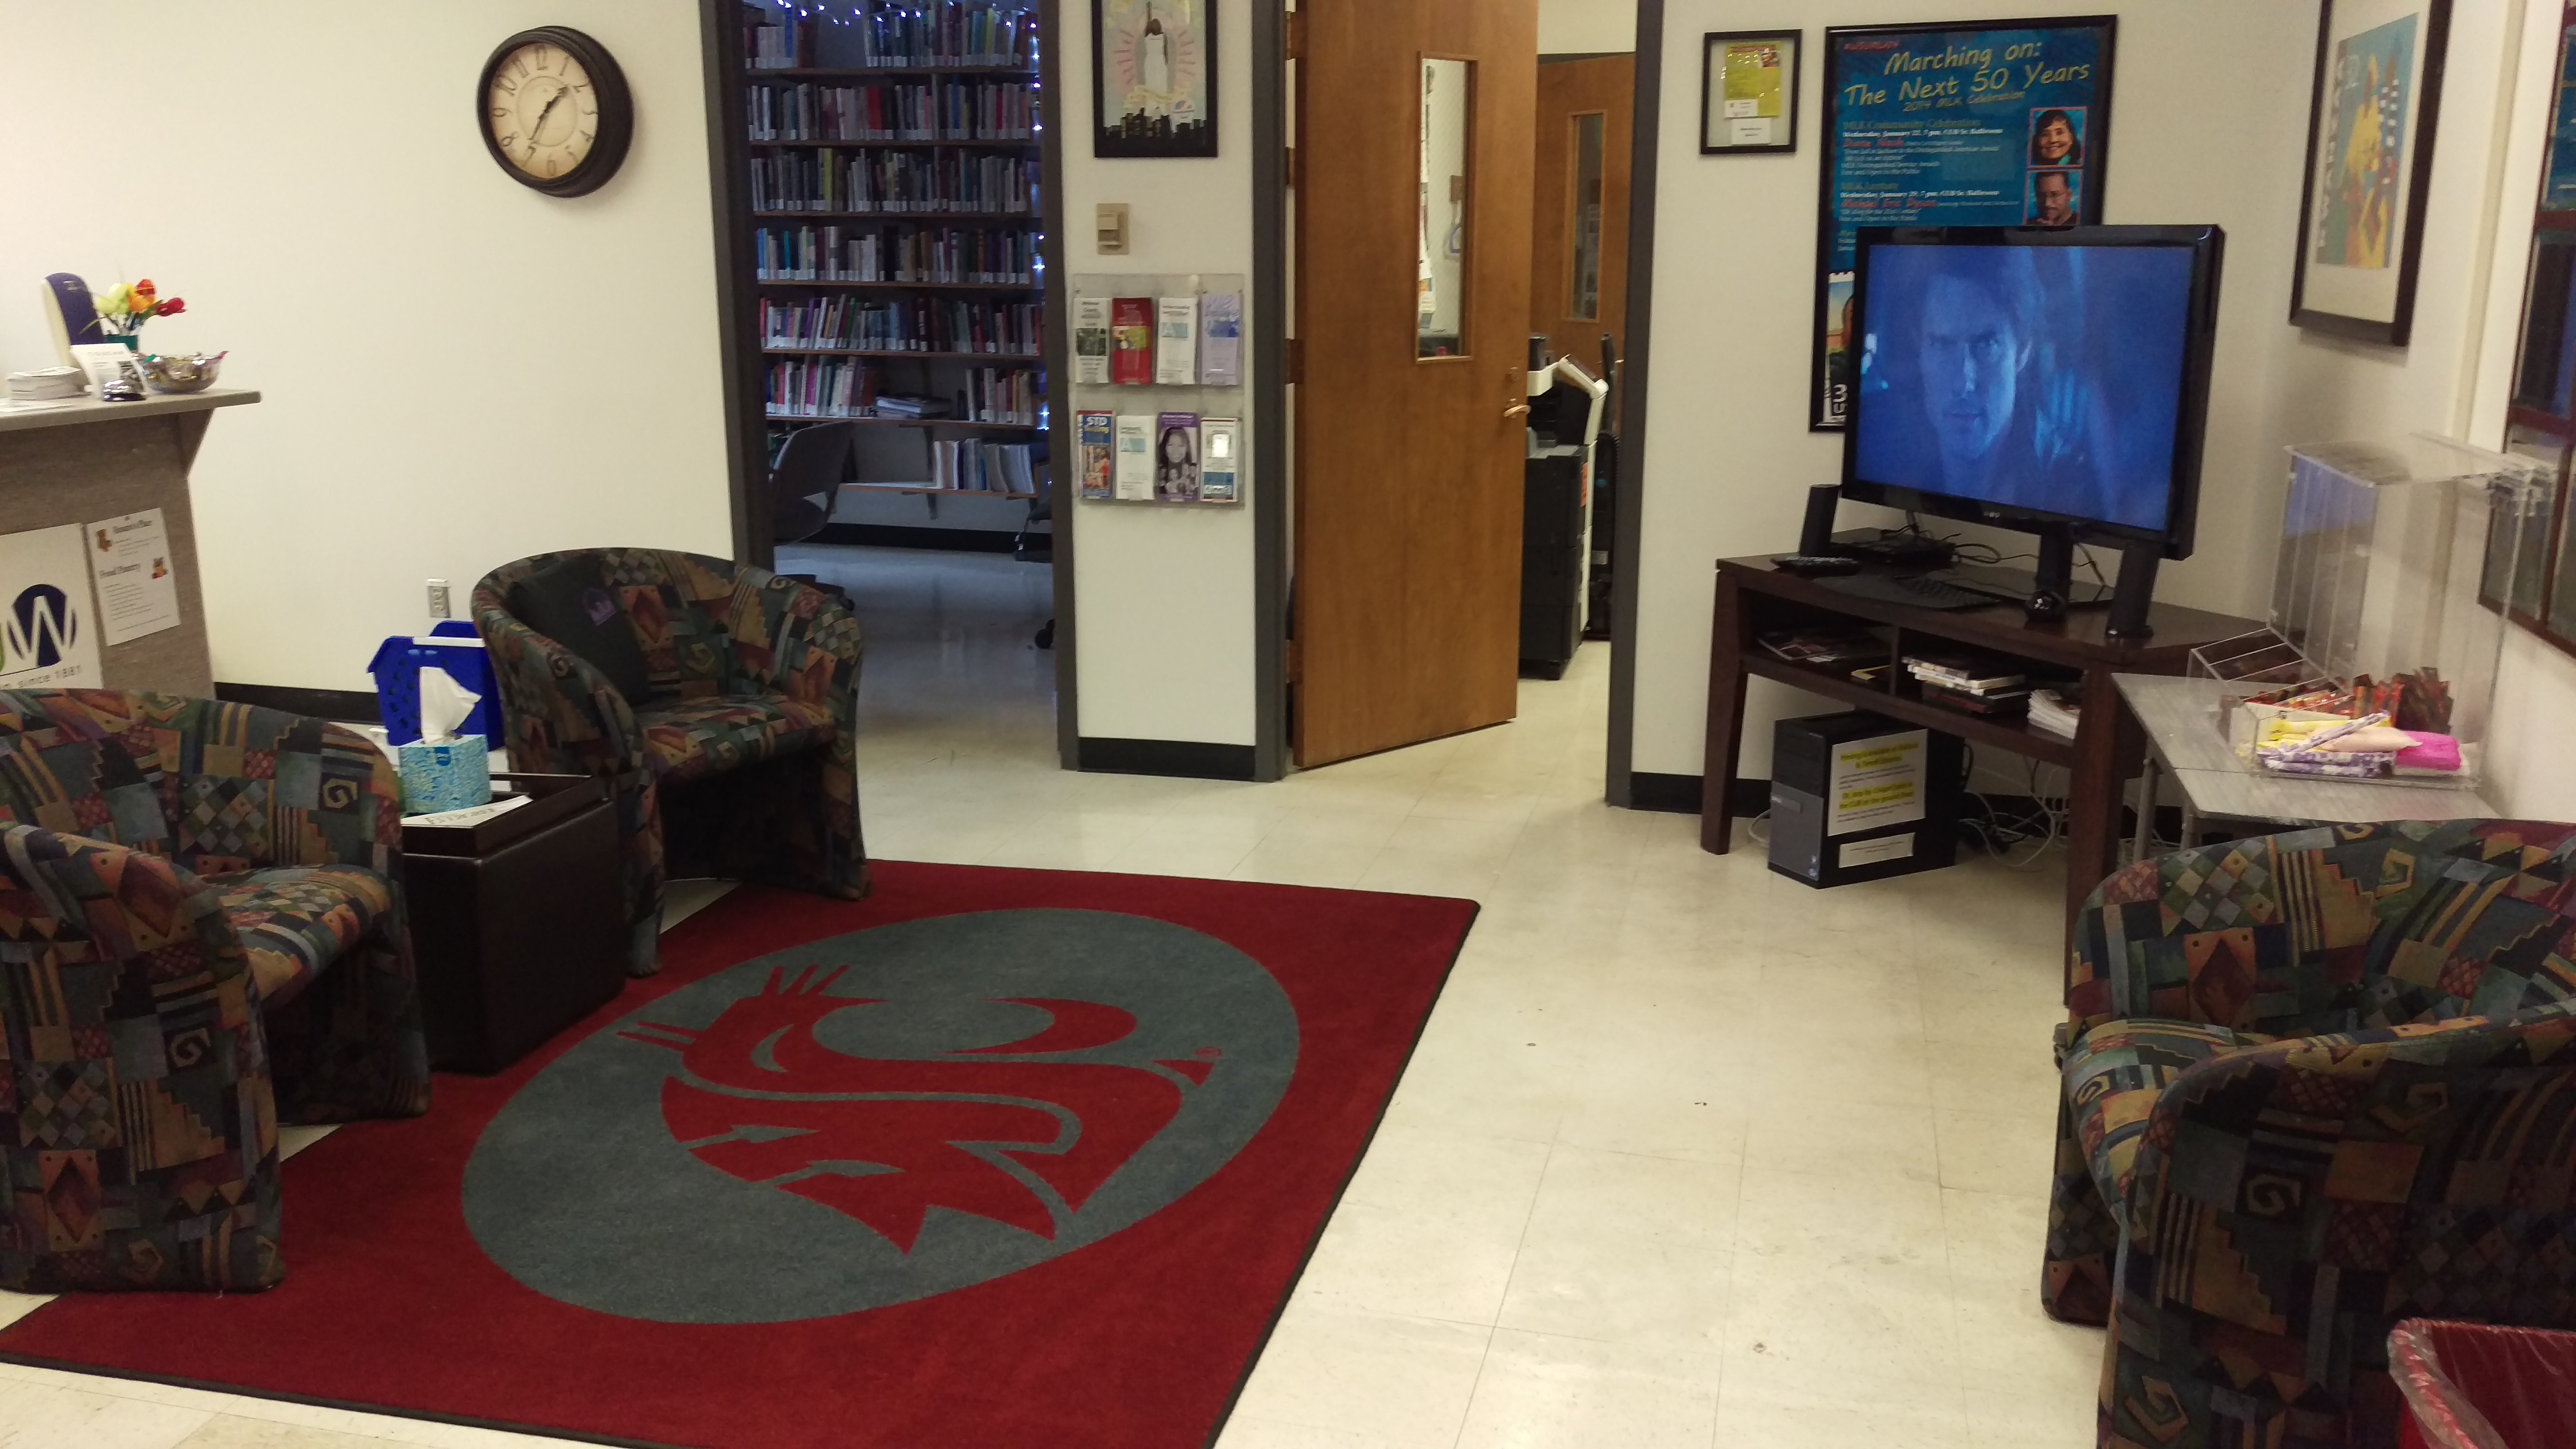 lounge with cougar rug, chairs, TV